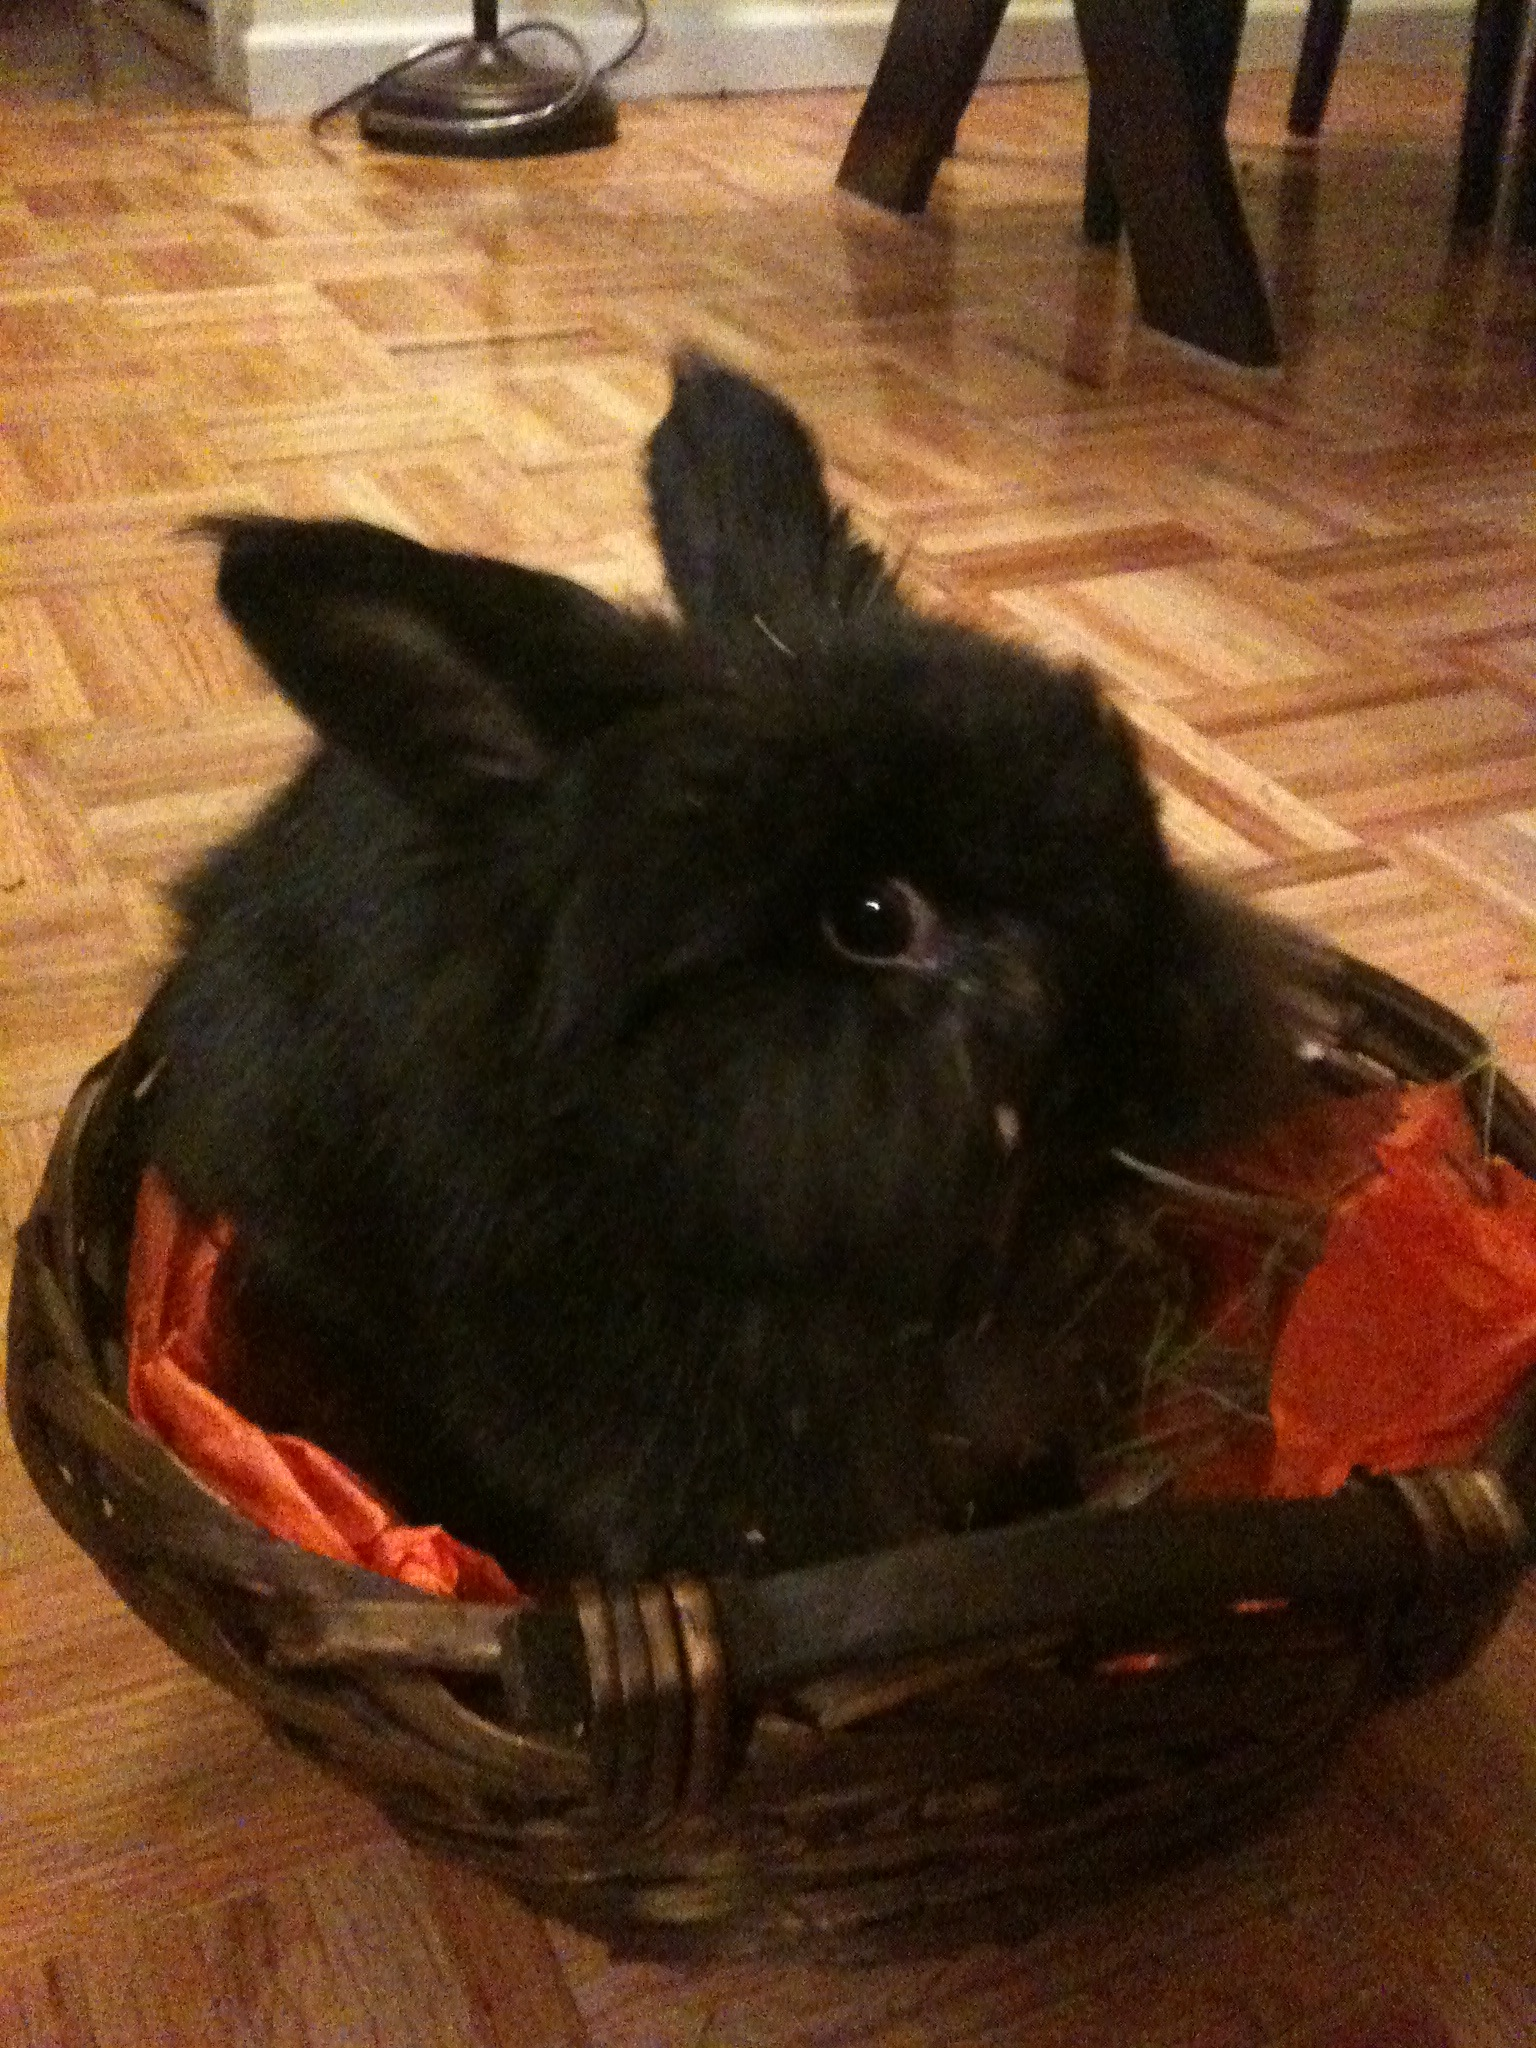 Bunny Brought Home Hay in Her Trick-or-Treat Basket